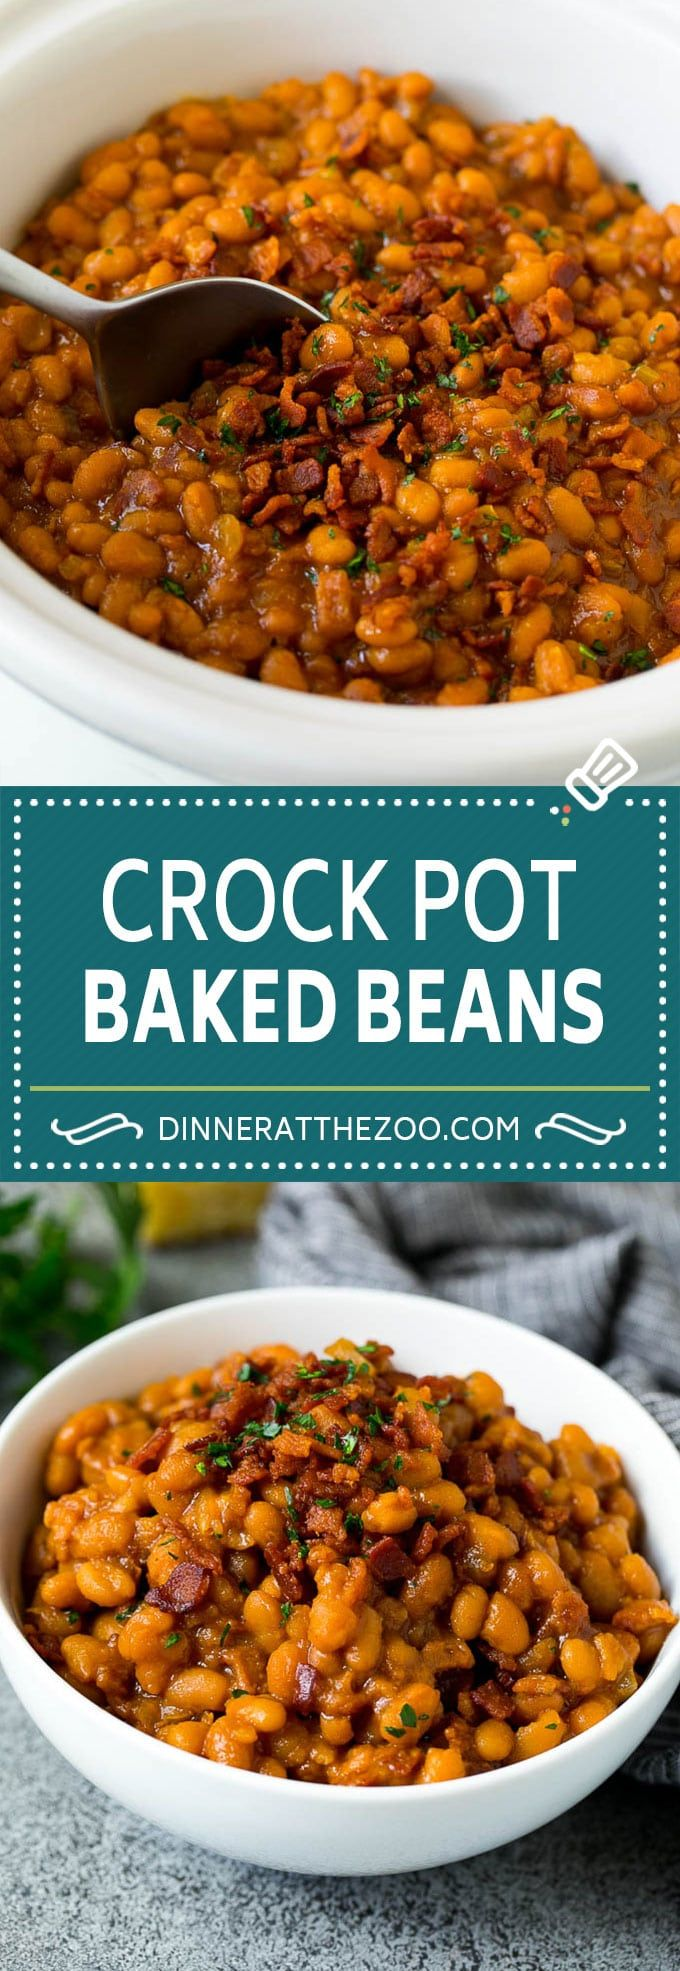 Crock Pot Baked Beans | Slow Cooker Baked Beans